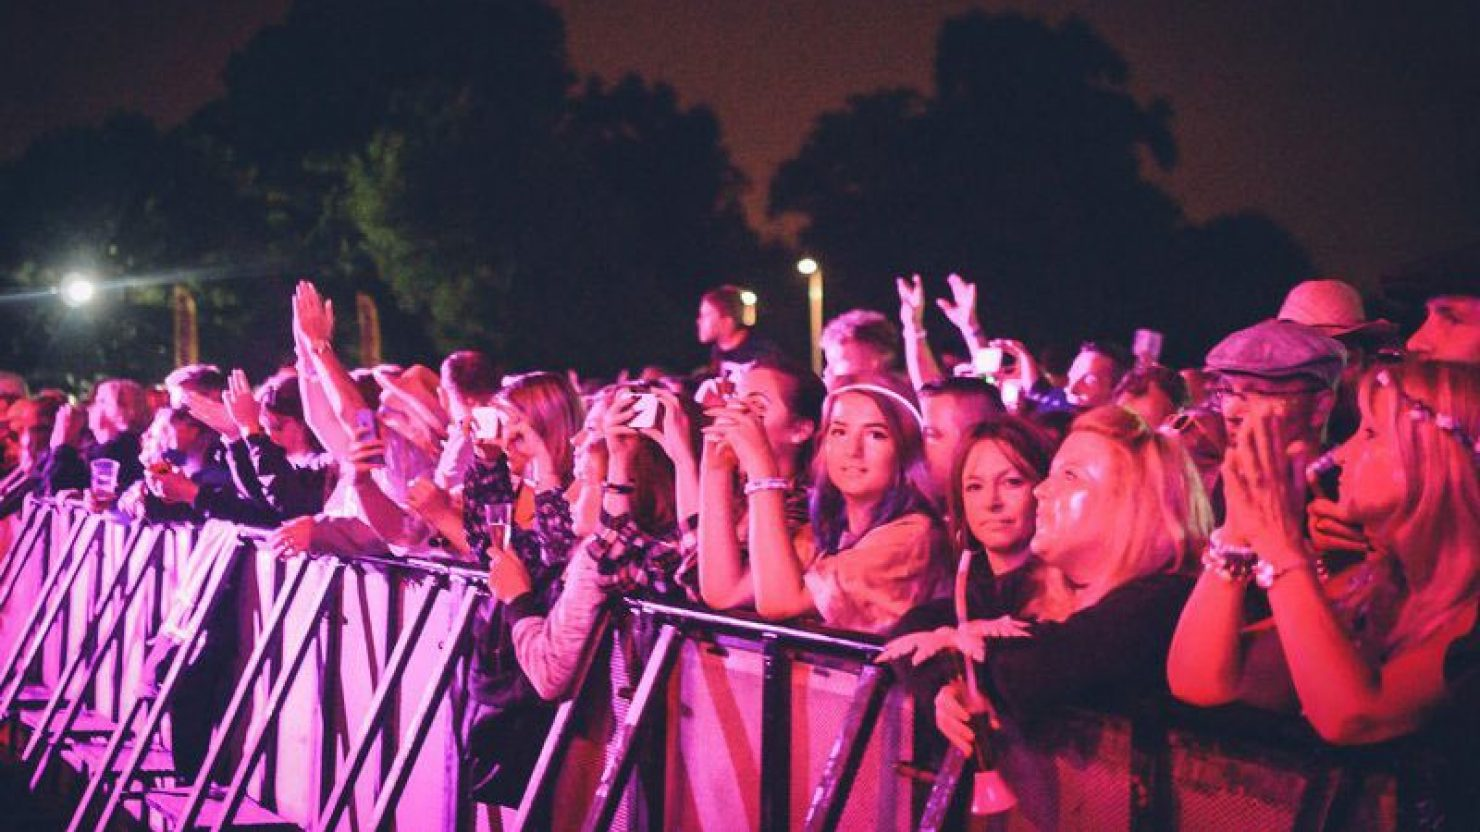 Crowd at the Solihull Summerfest Main stage in Solihull